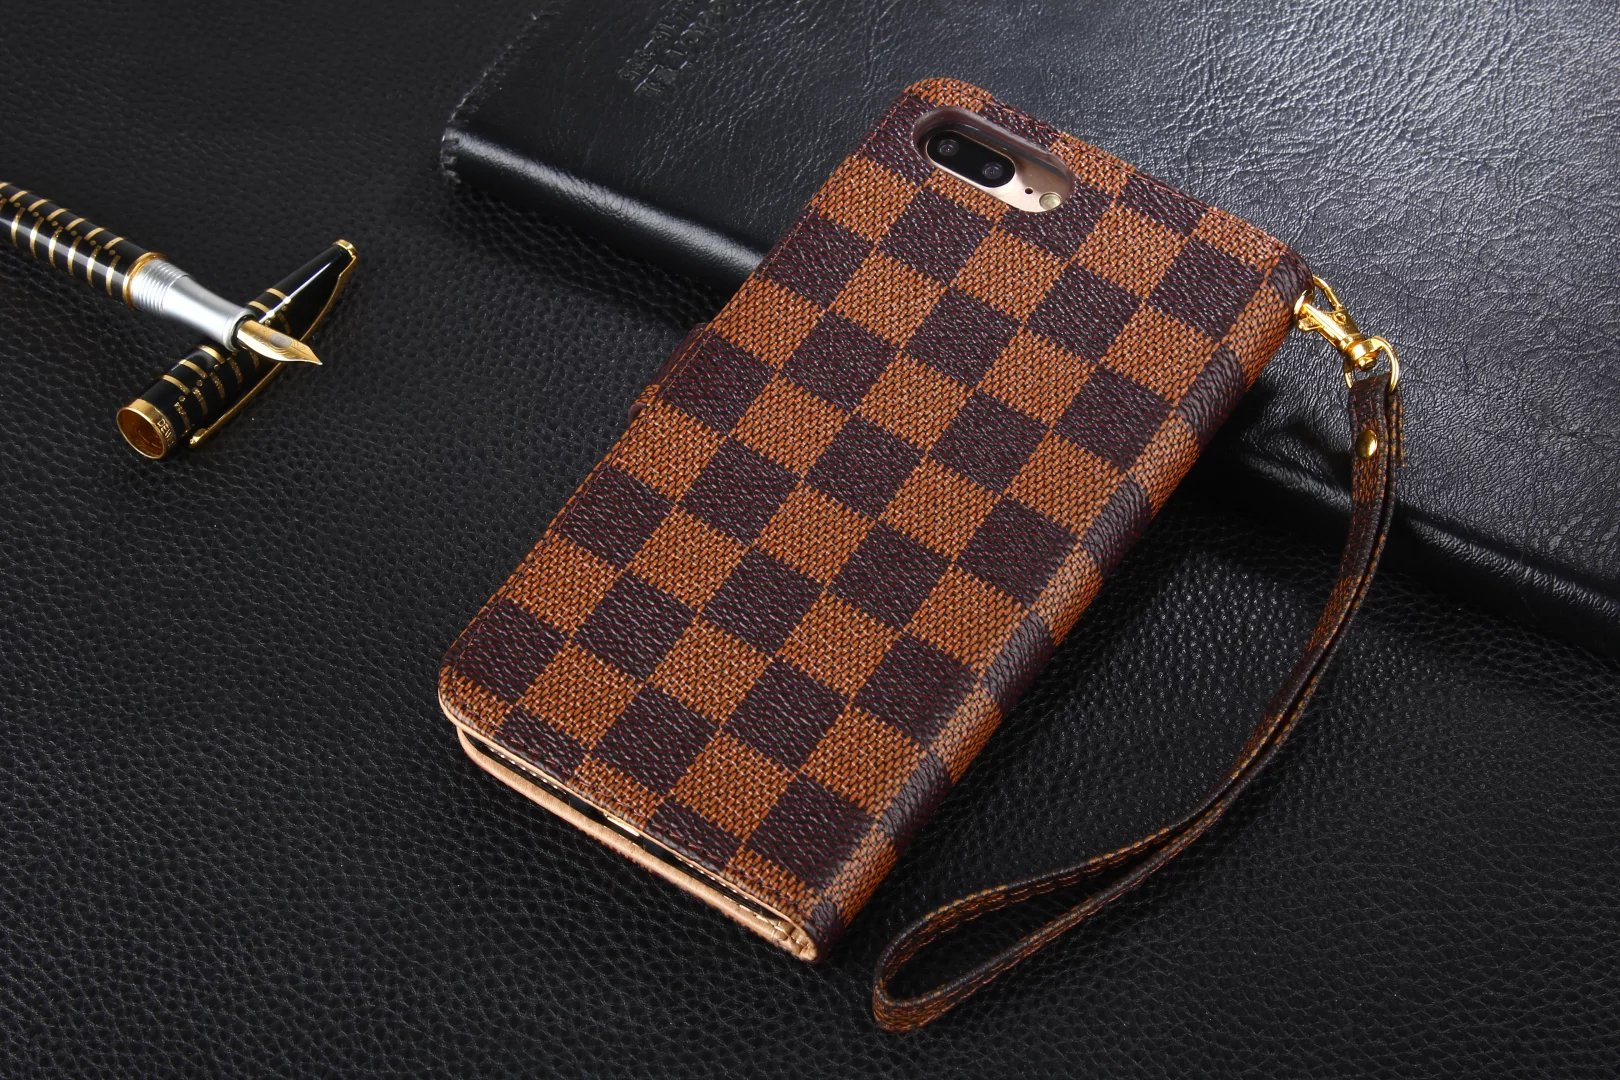 iphone 8 Plusa cases iphone 8 Plus case fashion Louis Vuitton iphone 8 Plus case womens iPhone 8 Plus case mophie juice pack case best iPhone 8 Plus phone cases best cases iPhone 8 Plus iPhone 8 Plus case protector iphone five covers